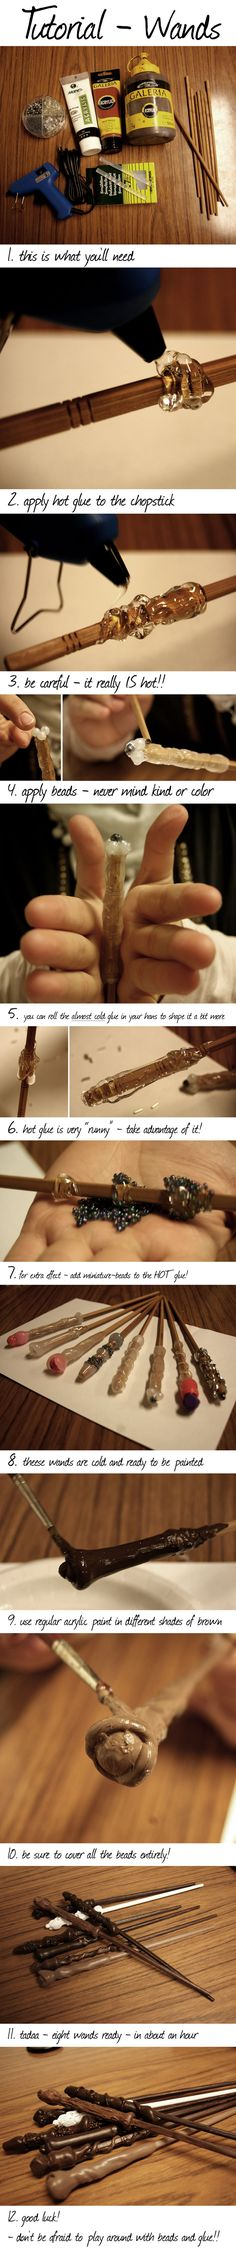 Homemade Harry Potter-style wands. Brilliant!